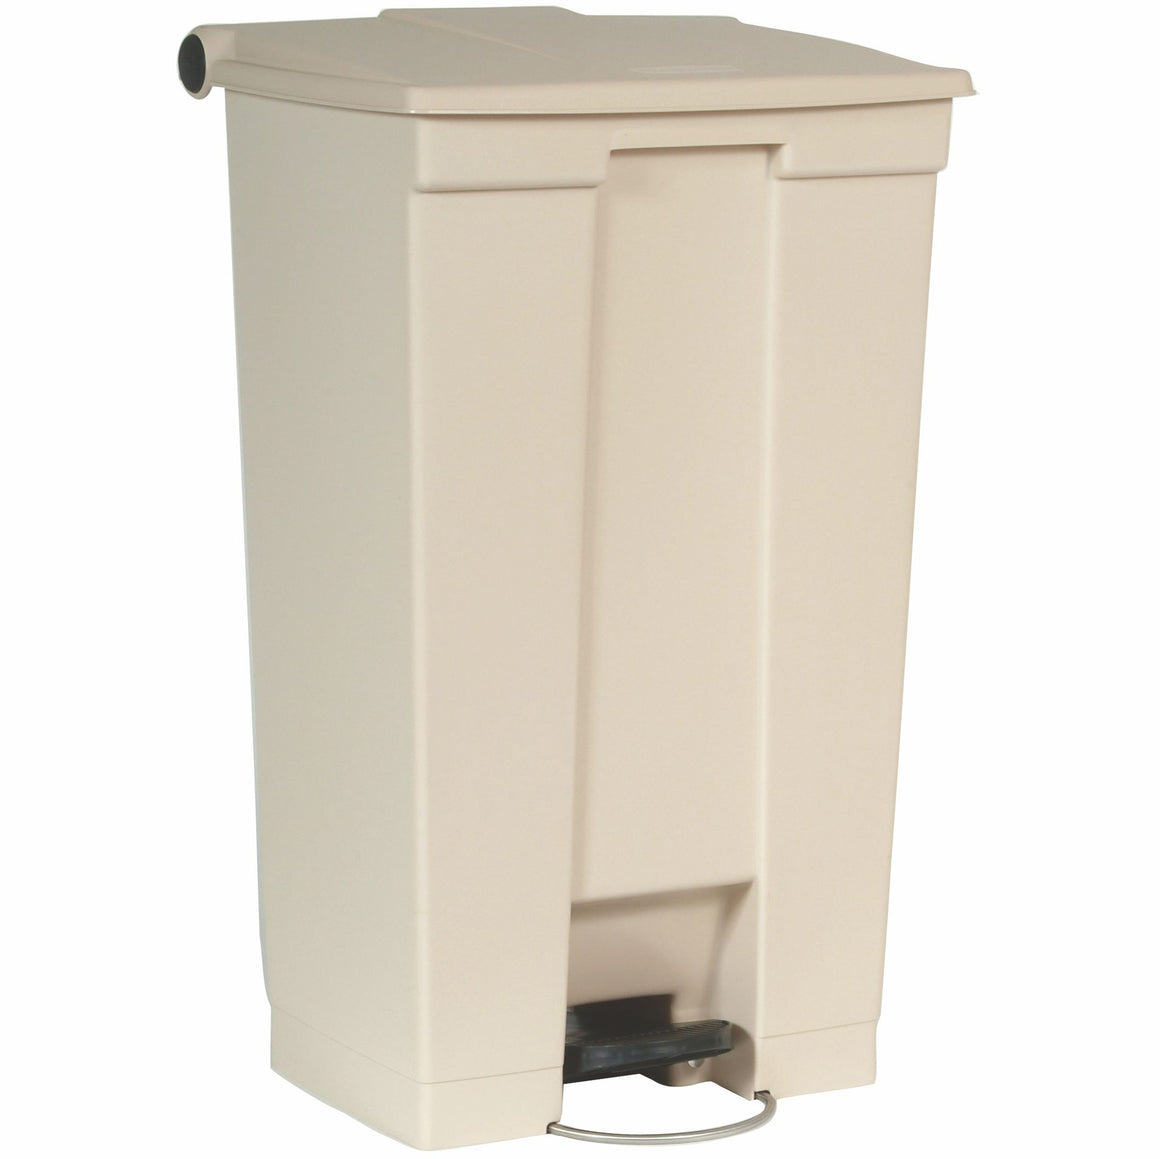 MOBILE STEP ON CONTAINER 23gal/87.1-lit BEIGE